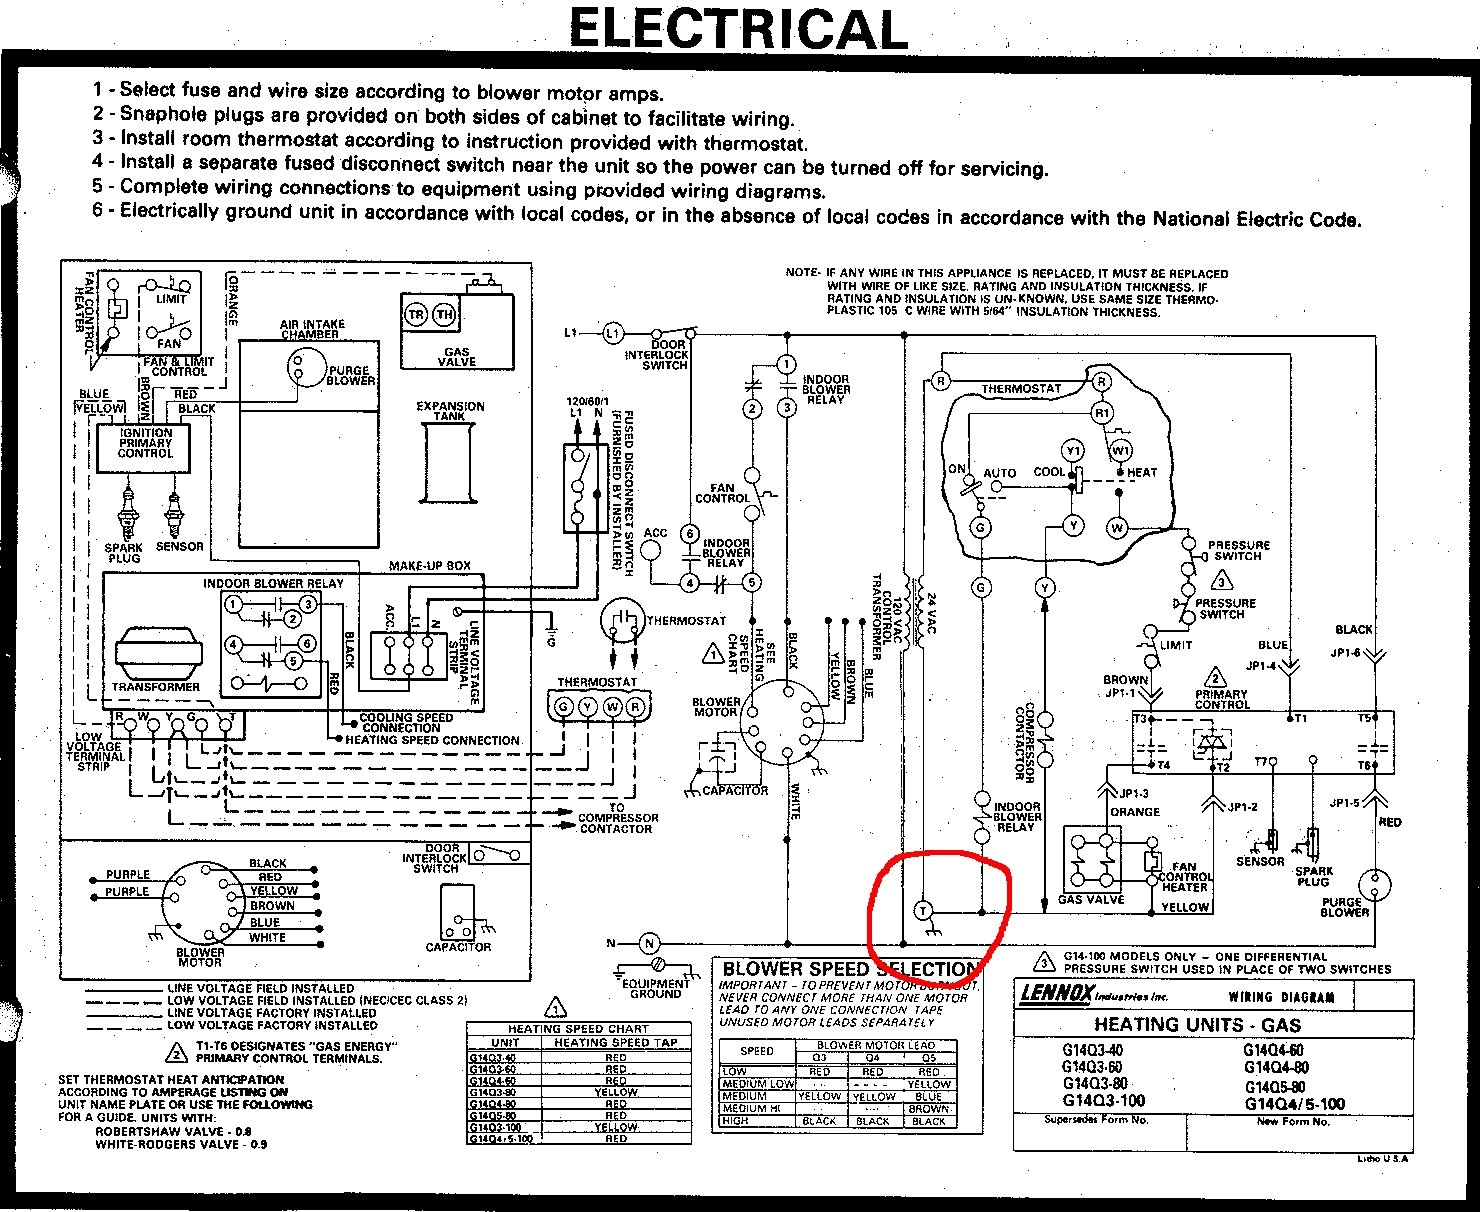 Old Lennox Gas Furnace Wiring Diagram